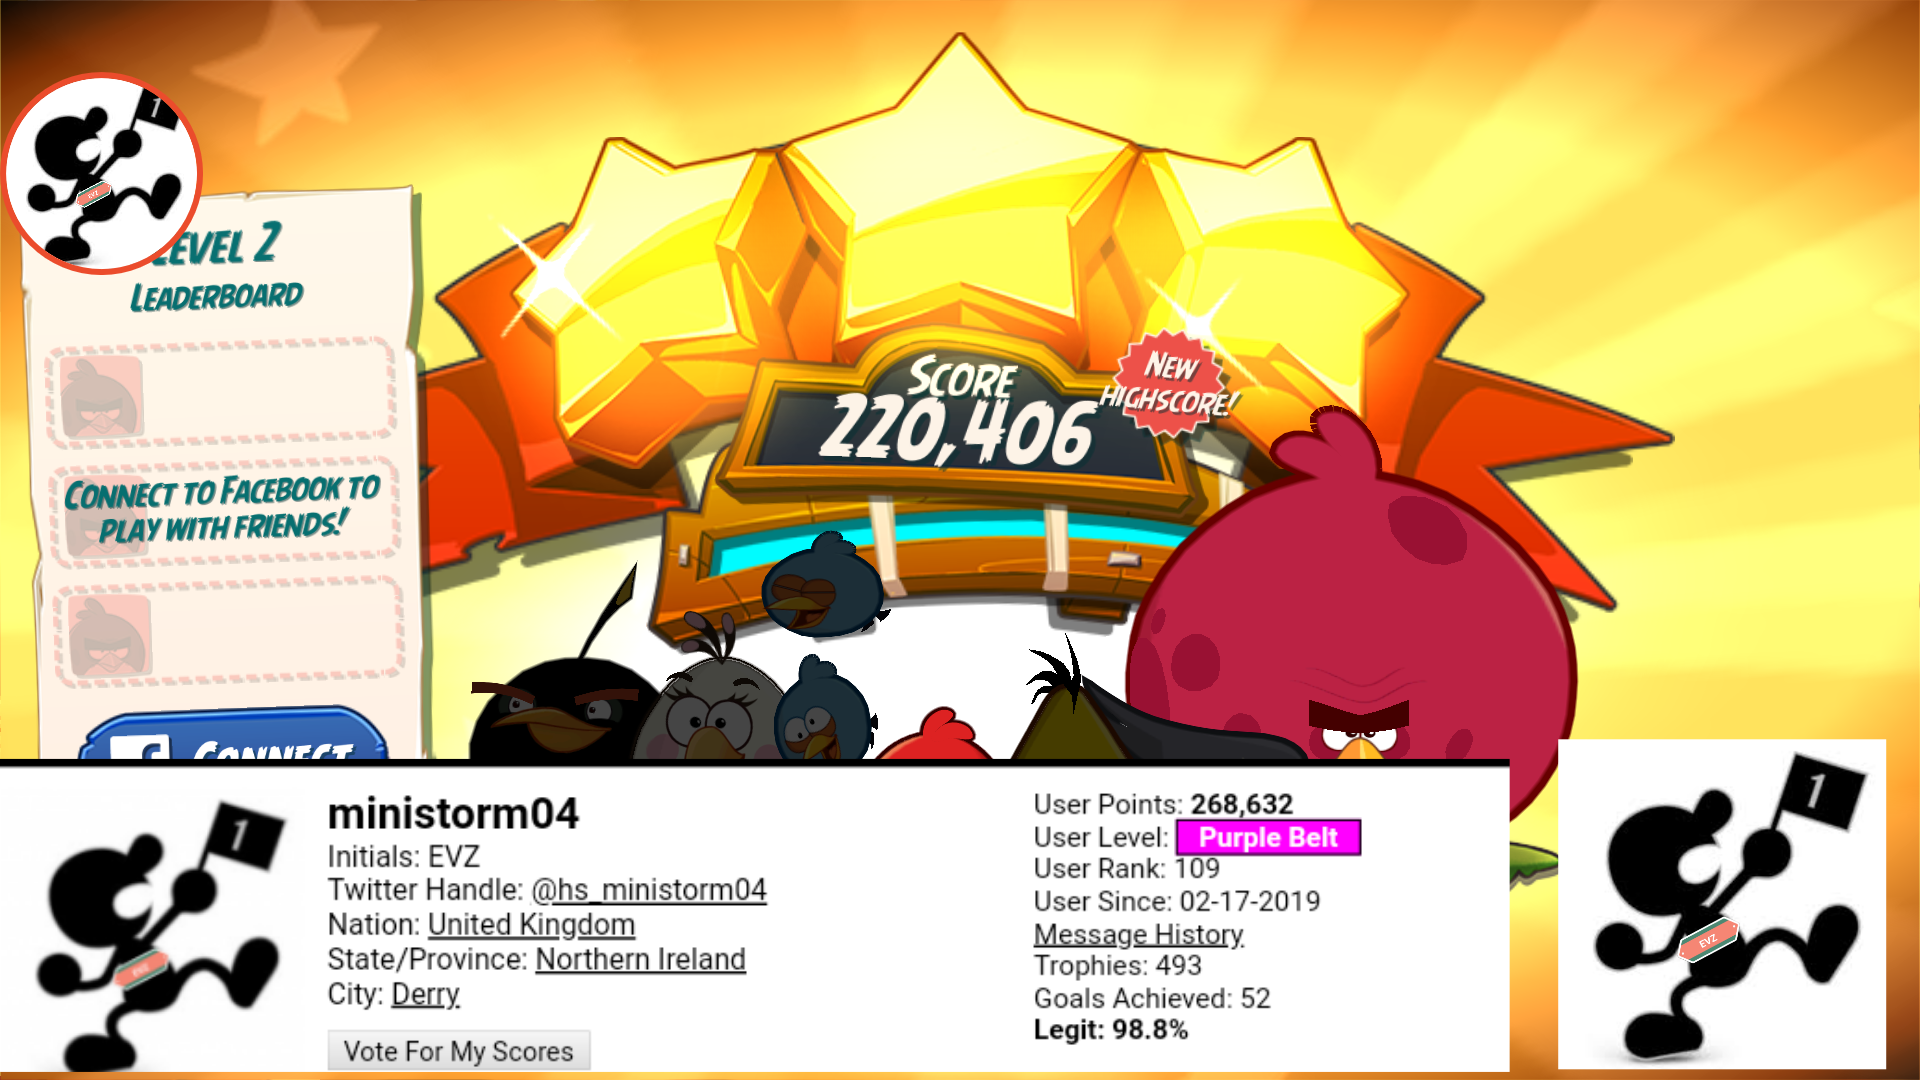 ministorm04: Angry Birds 2: Level 2 (Android) 220,406 points on 2019-07-08 07:22:33